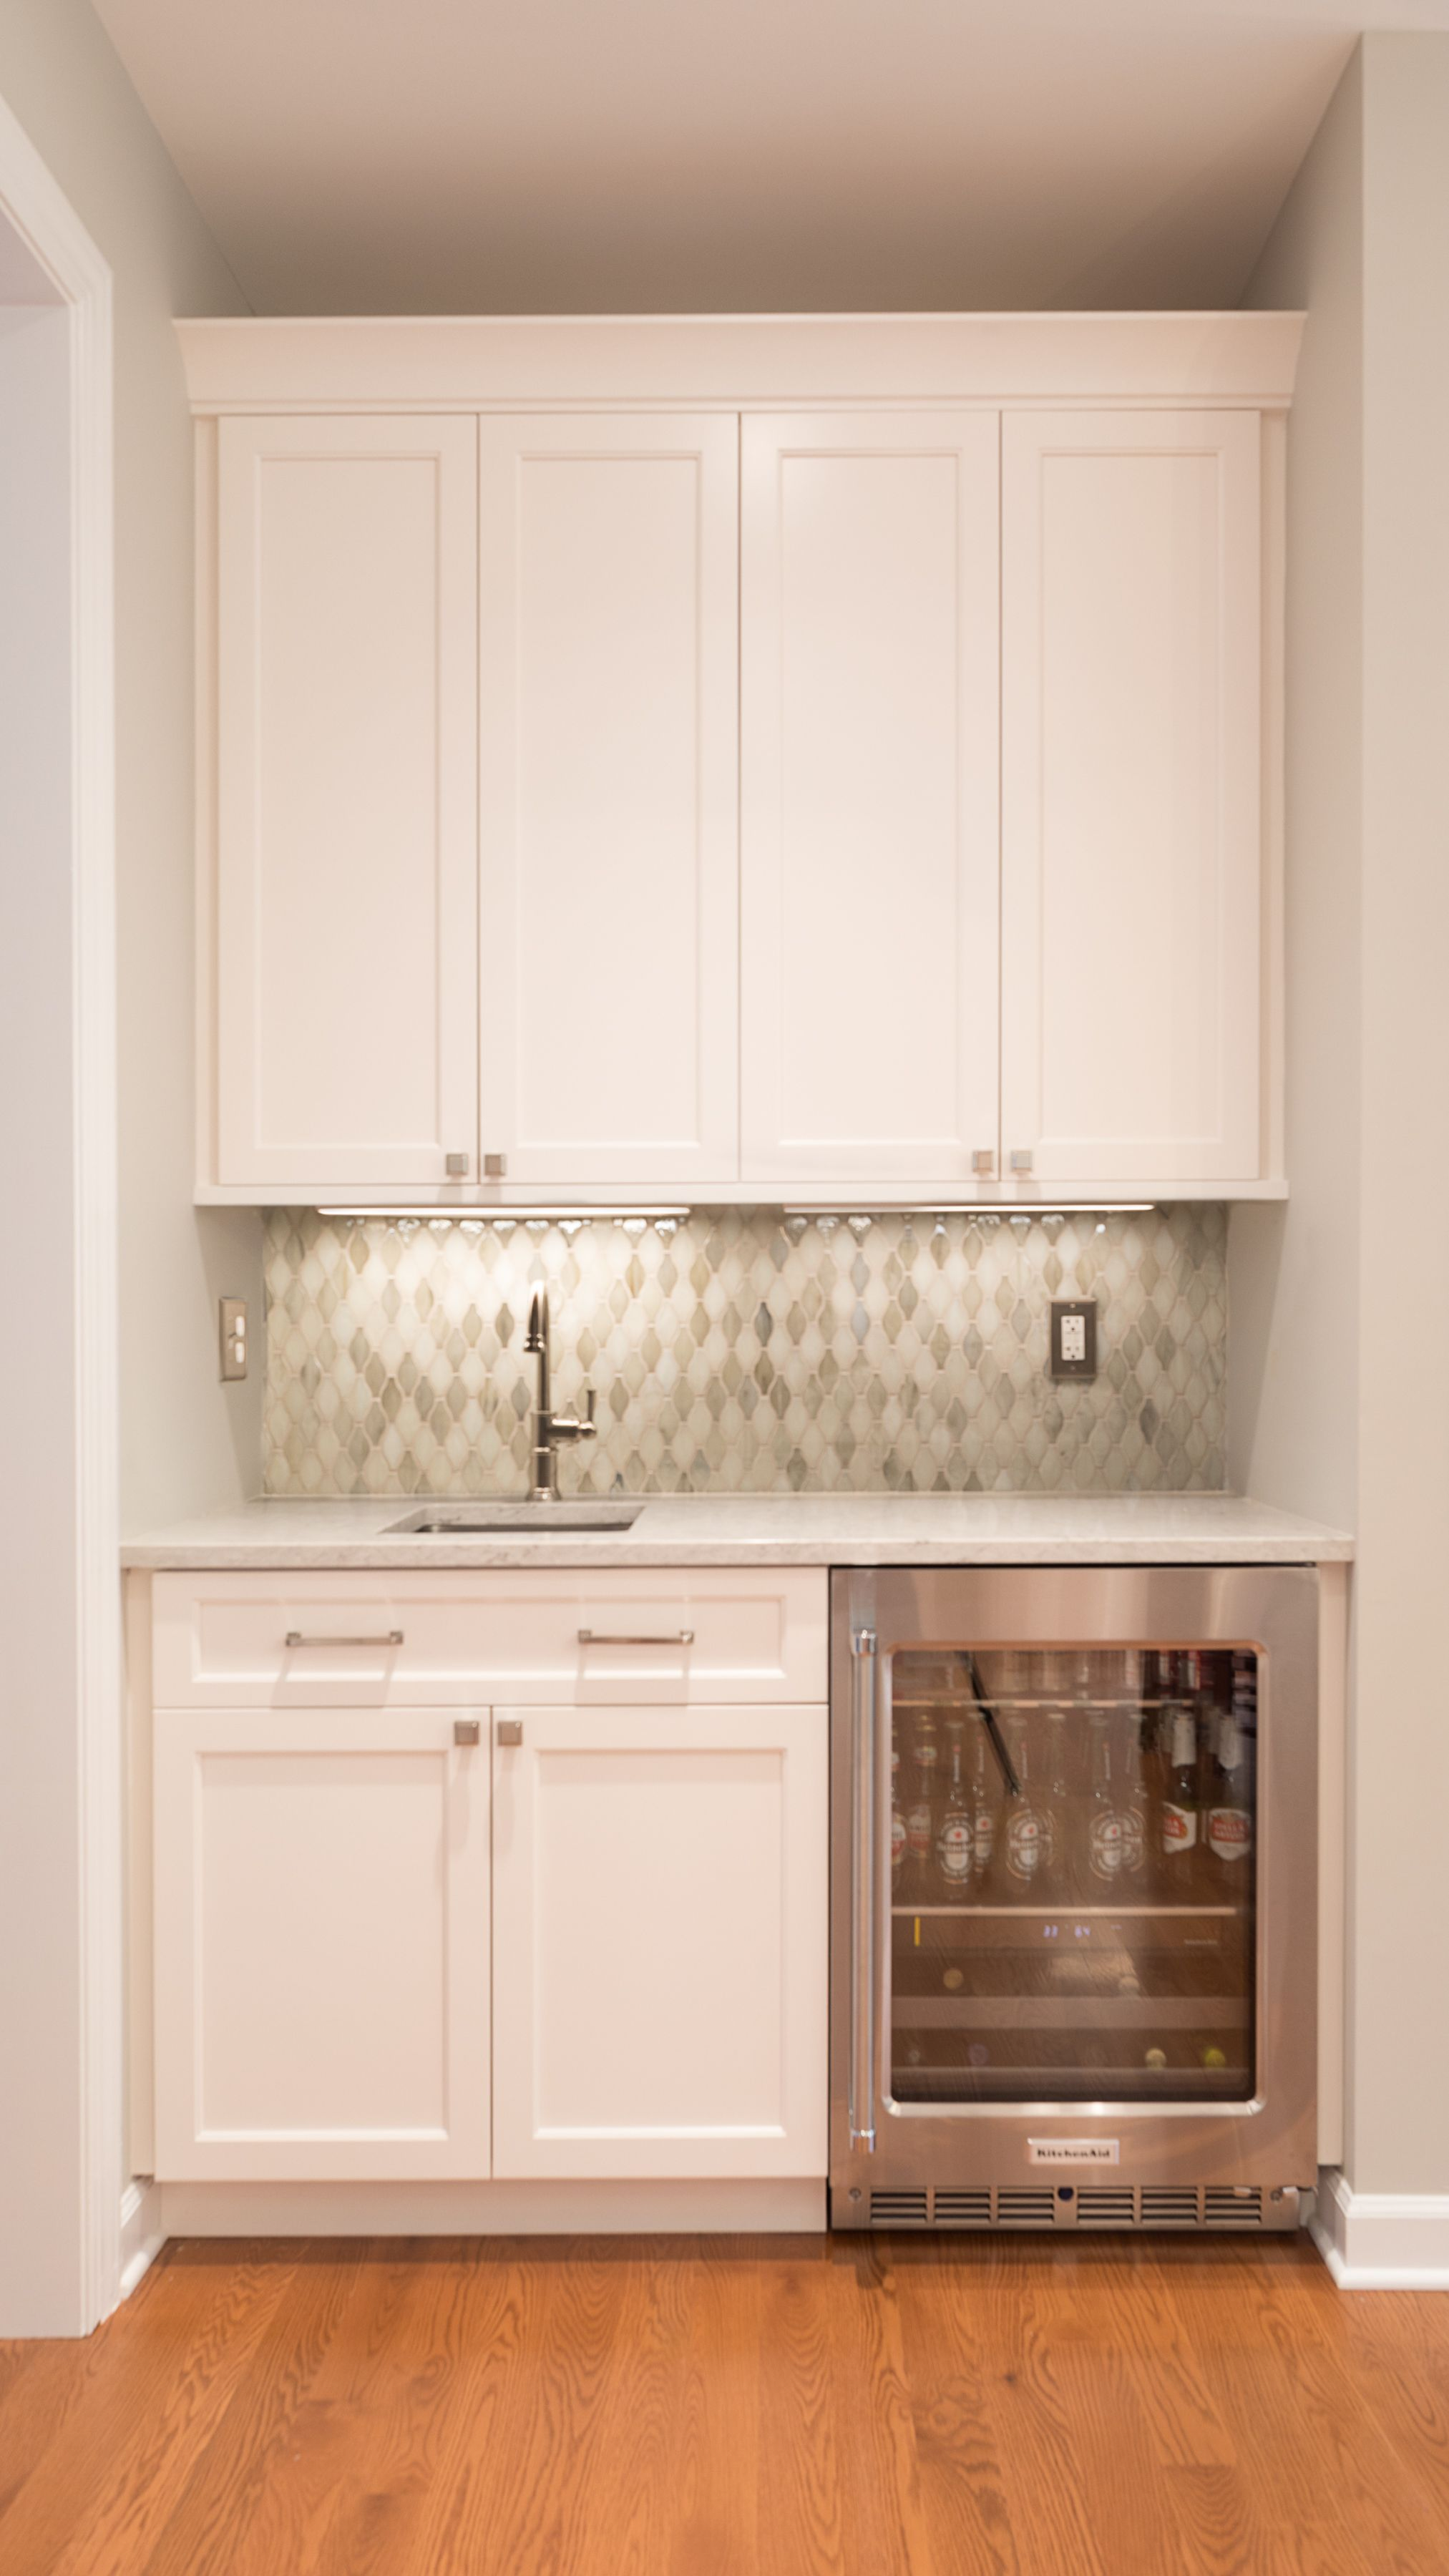 This Beautiful Wet Bar Definitely Amps Up The Style Factor Clean Lined Soft White Shaker Cabinets Eleg Kitchen Remodel Basement Bar Designs Wet Bar Basement